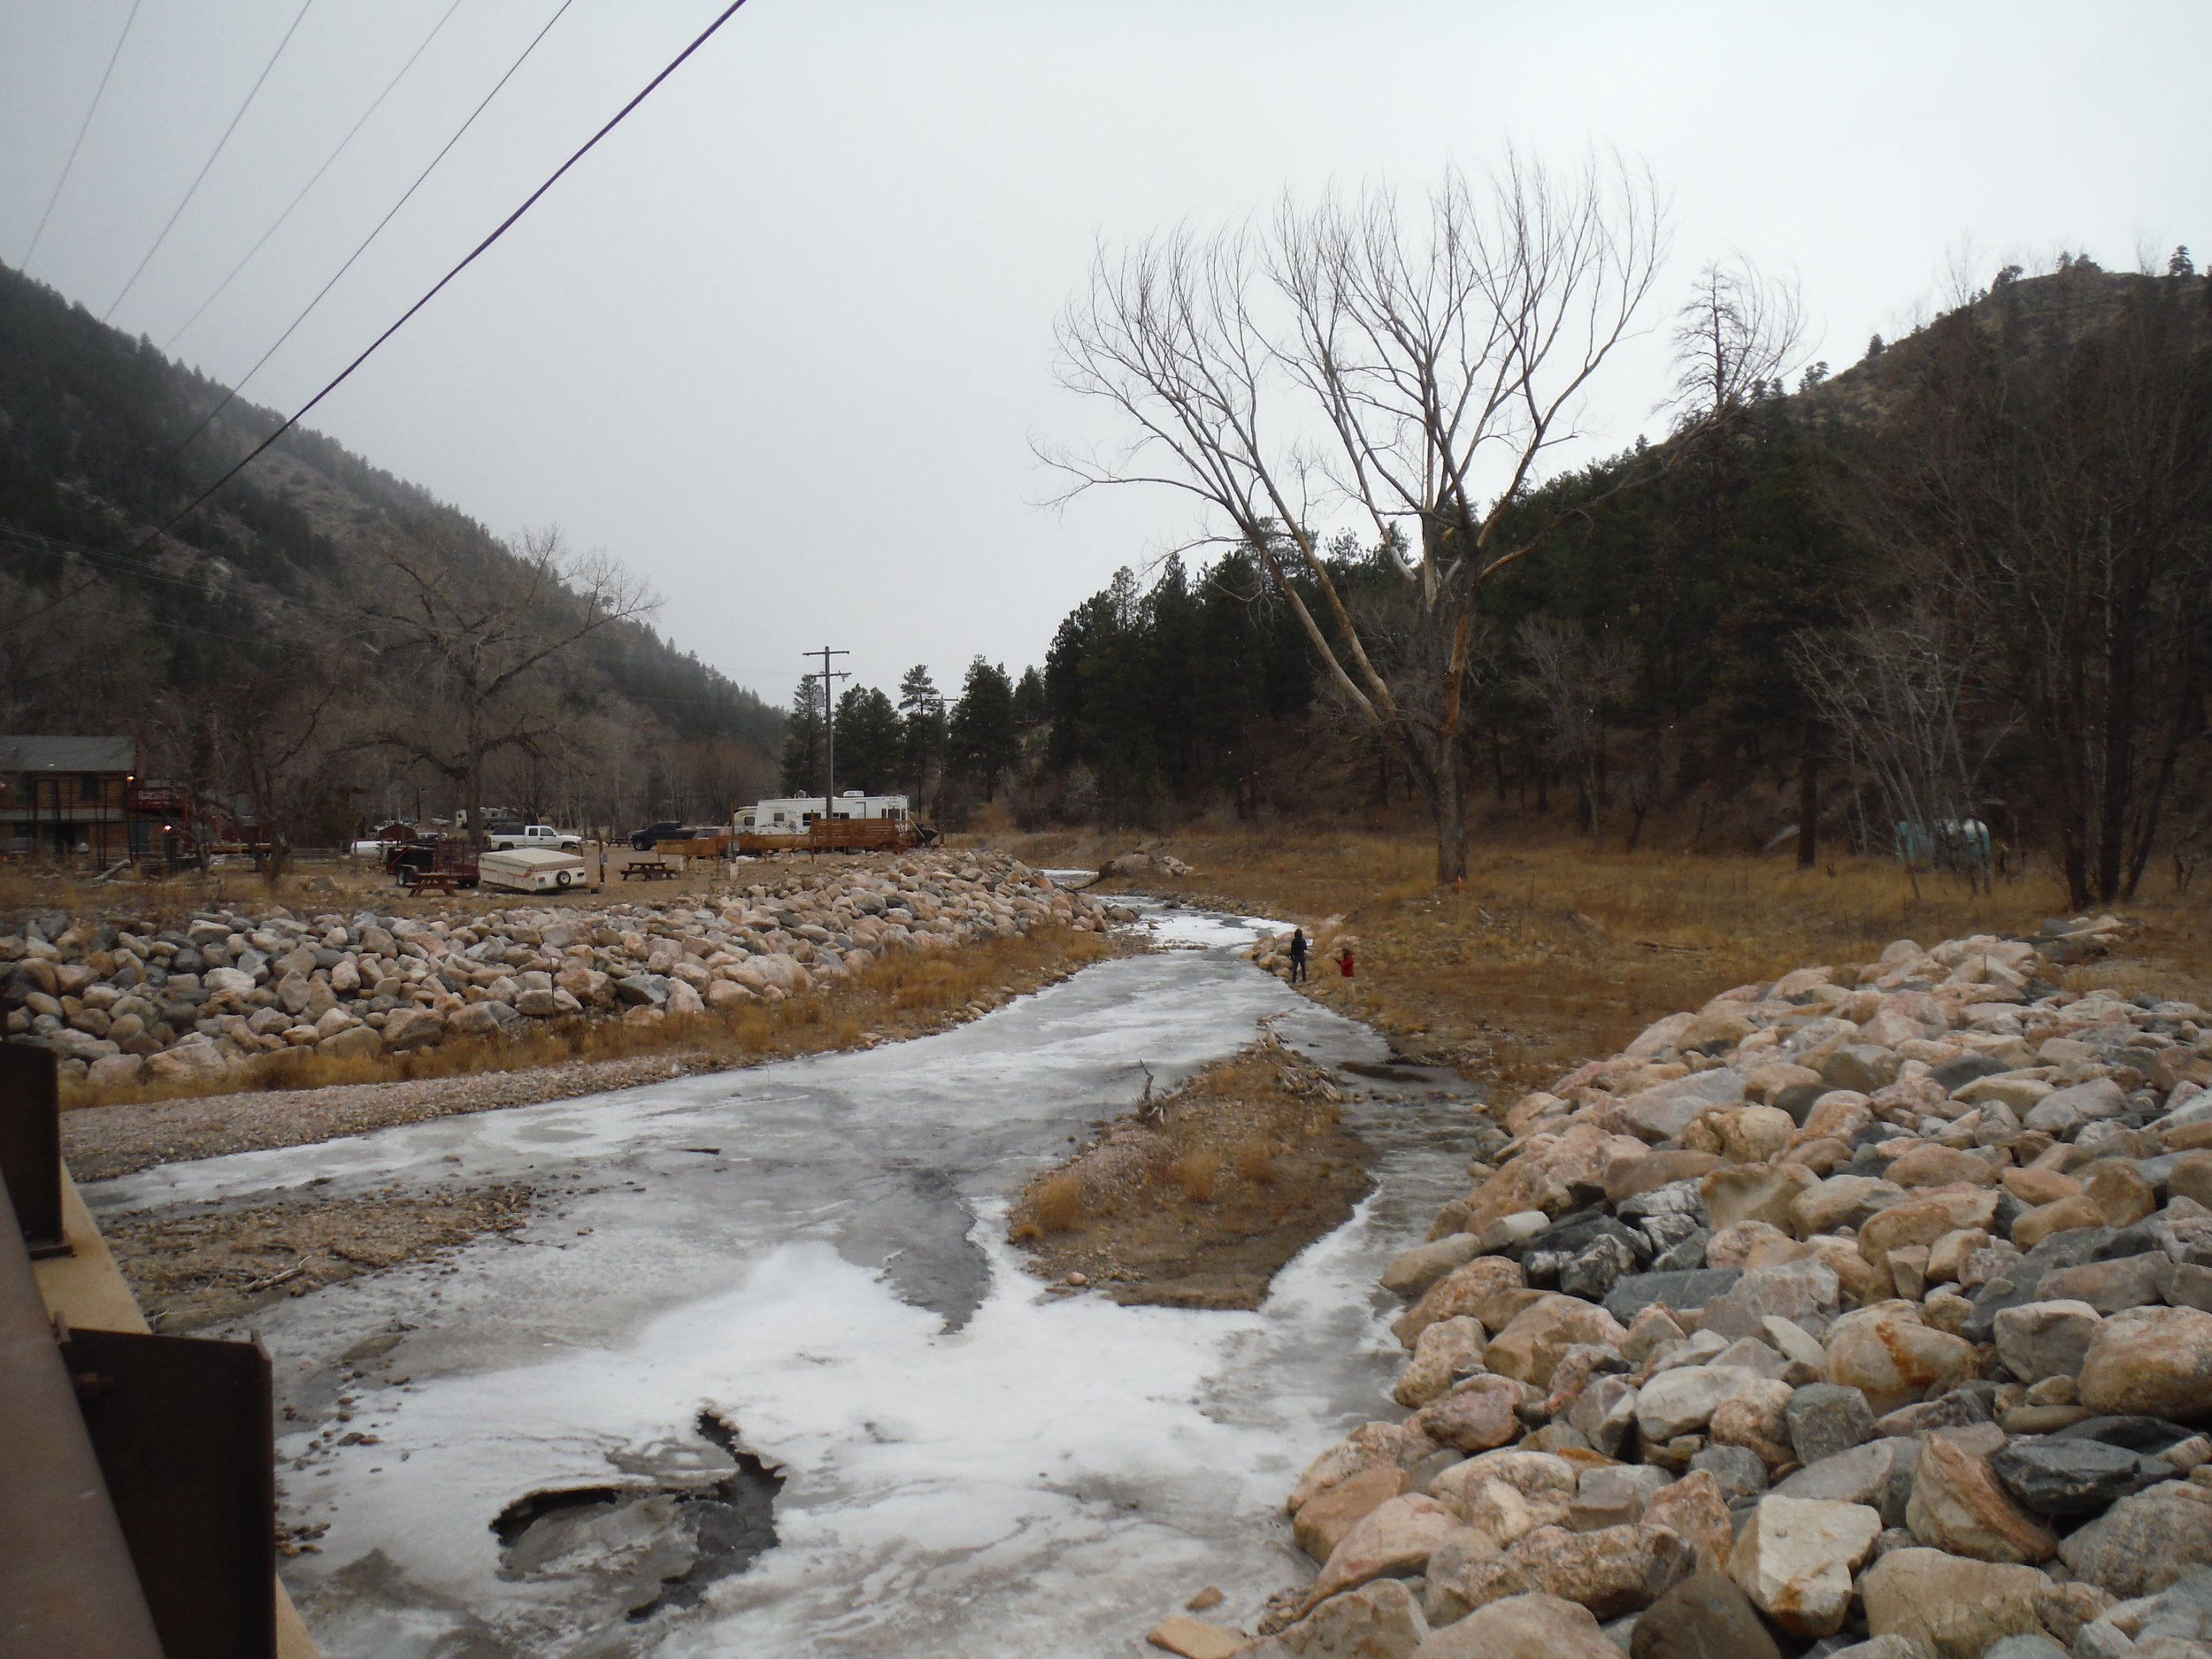 December 2016: Looking upstream at the North Fork from the US 34 bridge after emergency work was completed (December 2016). Efforts undertaken in the months following the flood to quickly protect damaged structures from a large spring runoff resulted in a channelized ditch with riprap on both sides. The emergency repairs may have provided some emotional comfort but offered very little long-term relief and even less ecological benefit.